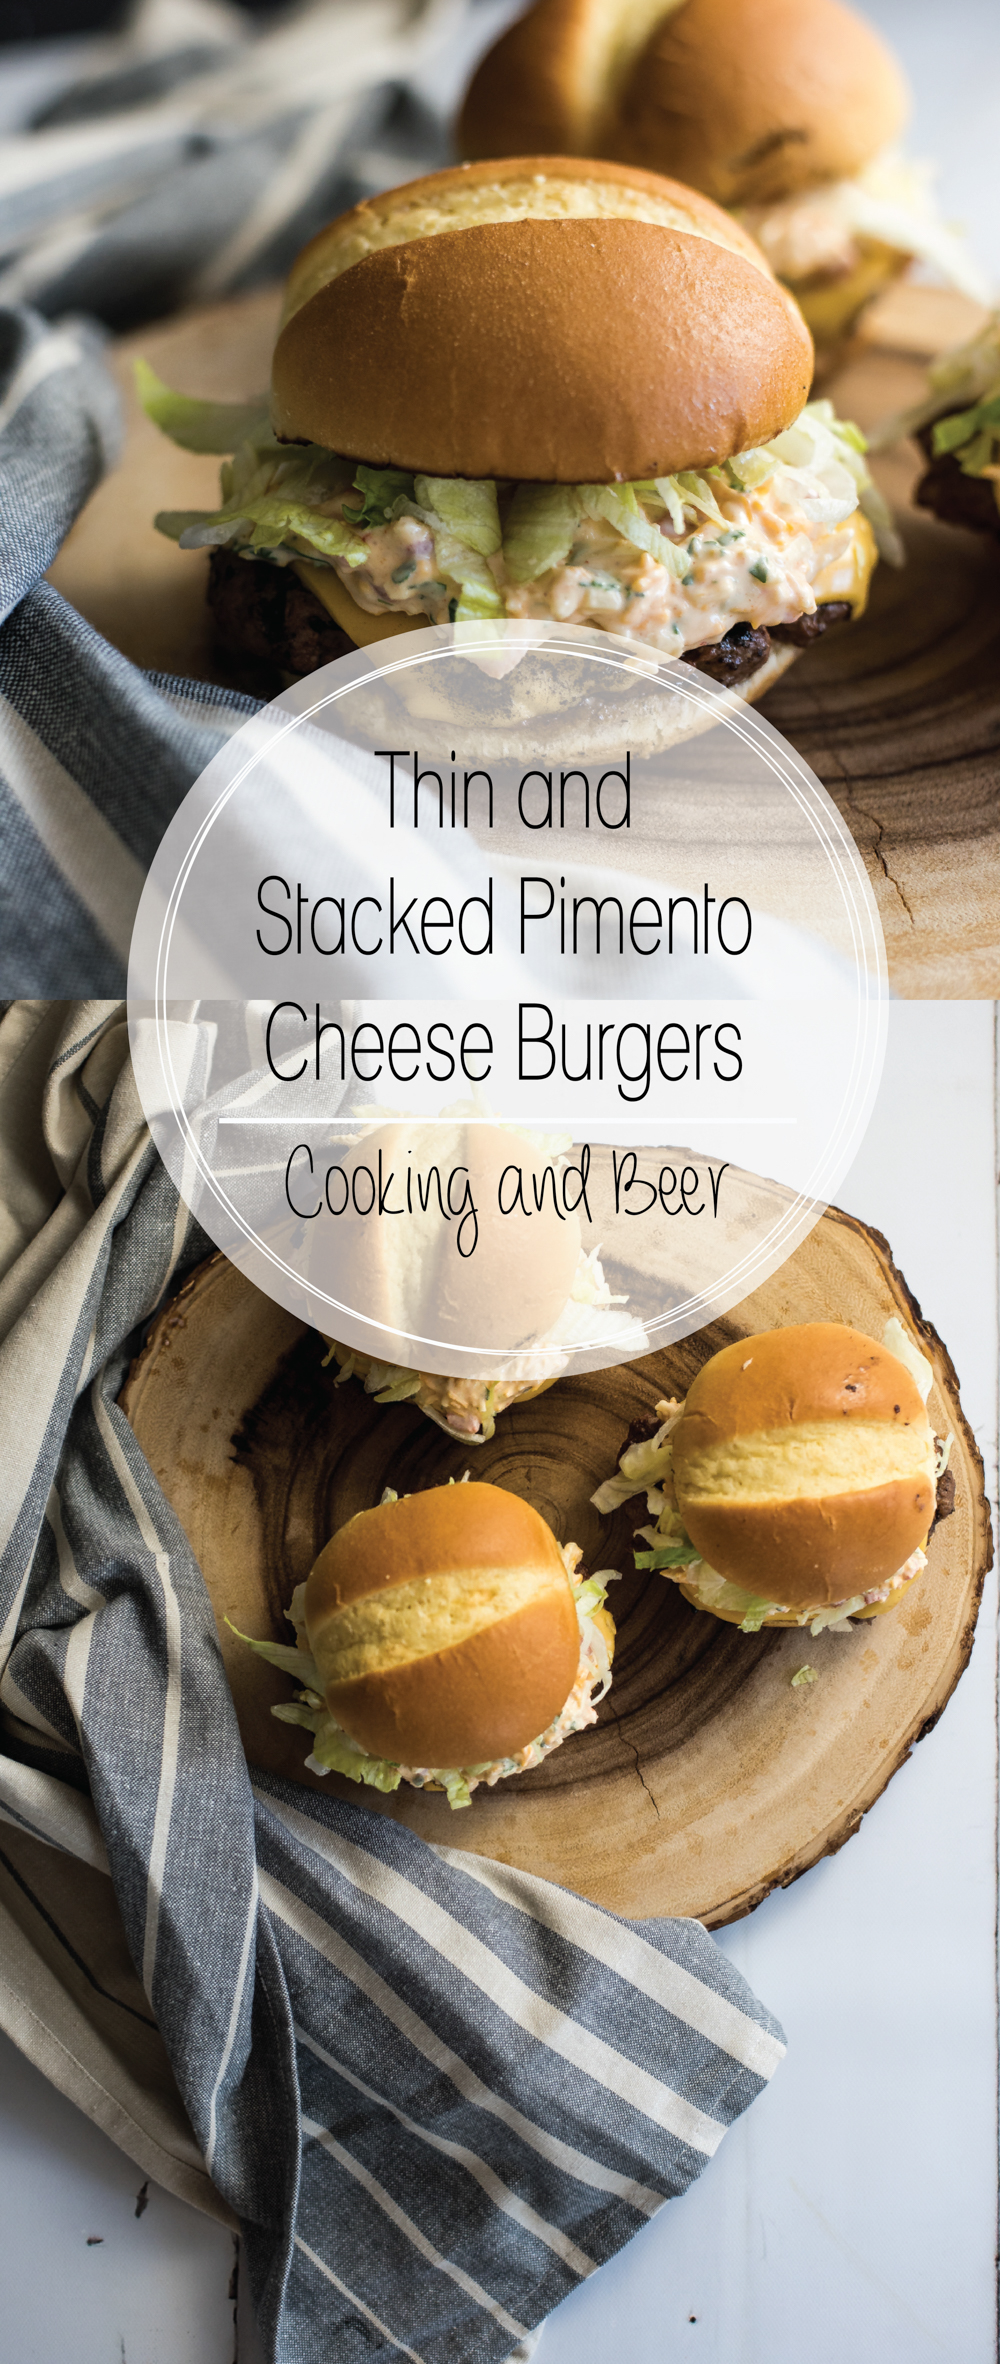 These thin and stacked pimento cheeseburgers are like no burger you've ever had. The burgers are crispy and thin, and are topped with the best cheese!